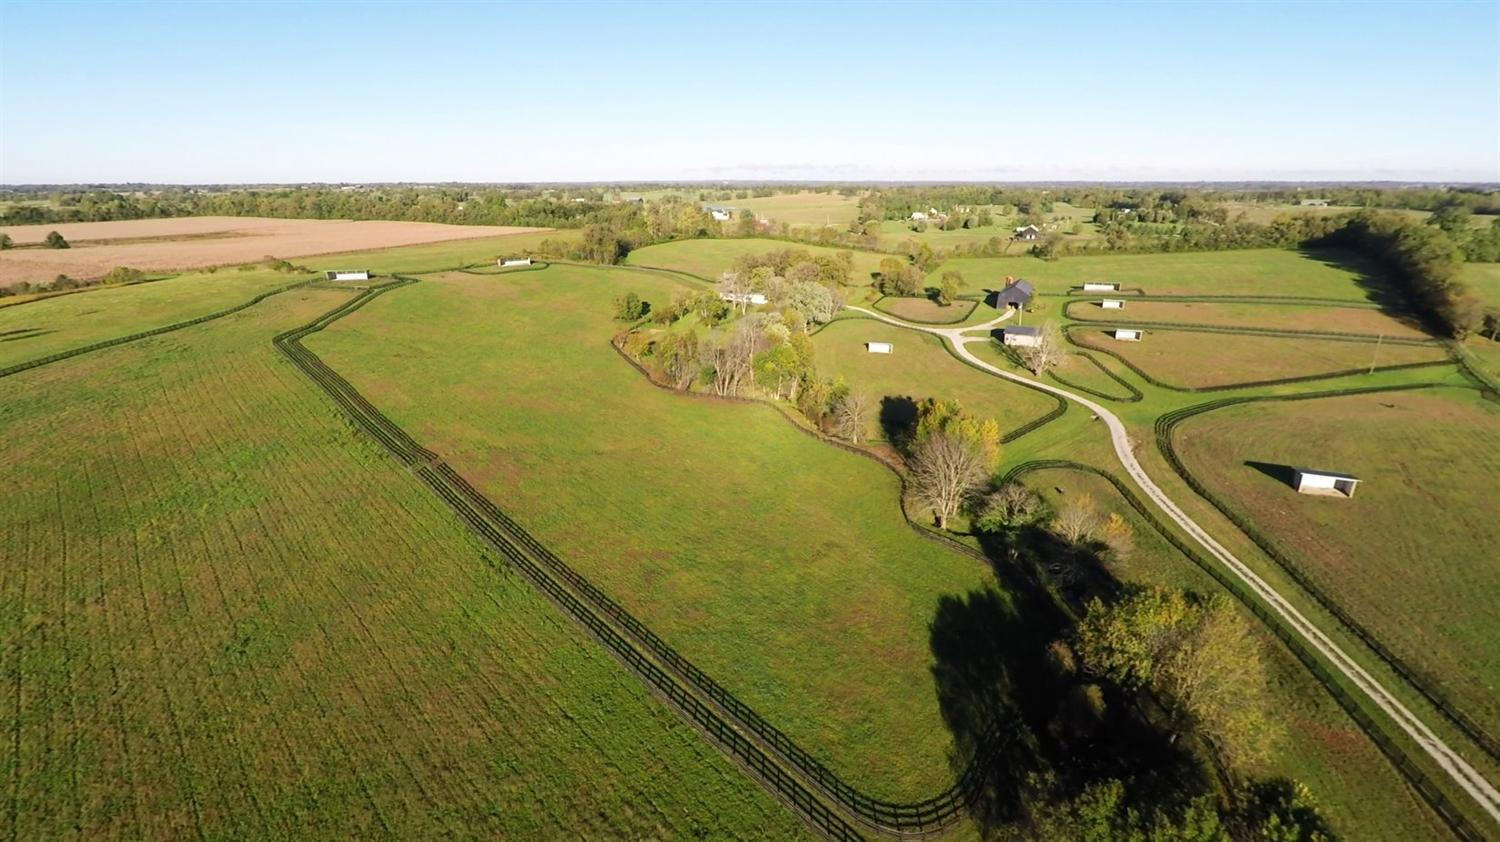 Gorgeous%2074%20acre%20turn-key%20horse%20farm%20with%20gently%20rolling%20pastures%20&%20great%20soils.%20%20Stunning%20building%20site%20overlooks%20farm%20with%20breathtaking%20views%20of%20the%20countryside%20from%20one%20of%20the%20highest%20spots%20in%20the%20county.%20This%20well-designed%20farm%20developed%20in%202008%20has%20a%20manager's%20residence%20and%20a%20modern%20high-quality%20four-stall%20steel%20horse%20barn%20w/insulated%20roof%20and%20wash%20stall%20and%20heated%20tack%20room,%20both%20with%20hot%20and%20cold%20water.%20A%20large%20tobacco%20barn%20has%20room%20for%20an%20additional%2014%20stalls.%204%20large%20fields%20and%205%20large%20paddocks%20have%20matching%20steel%20run-in%20sheds%20and%20there%20are%20also%20three%20smaller%20paddocks.%20All%20fields%20and%20paddocks%20have%20heated,%20insulated%20Varnan%20automatic%20waterers.%20Four-board%20oak%20fence%20throughout%20with%20diamond%20mesh%20fence%20on%20most%20of%20the%20perimeter.%20Entire%20farm%20on%20top-quality%20Maury-McAfee%20soils,%20small%20creek%20meanders%20through%20the%20property%20and%20a%20spring-fed%20artesian%20well.%20Well-located%20farm%20is%20near%20Runnymede%20Farm,%20Denali%20Stud,%20Silver%20Springs%20Farm,%205%20miles%20from%20%20Paris,%2019%20miles%20to%20the%20KY%20Horse%20Park.